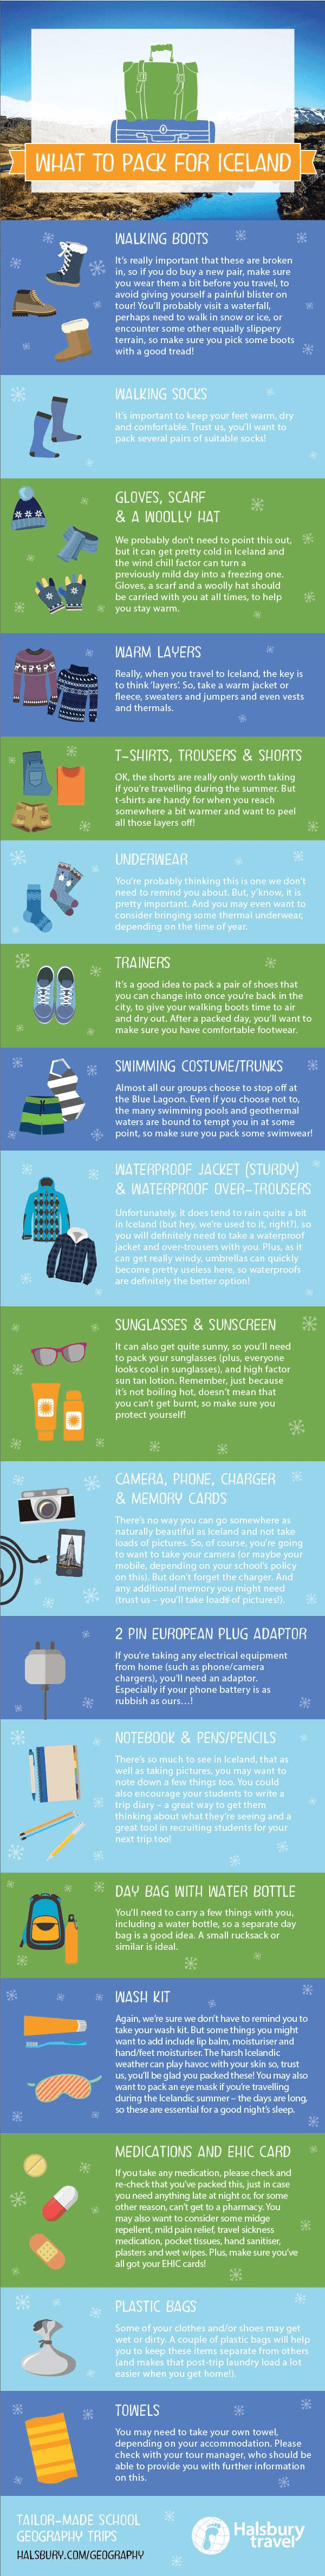 What to pack for a school trip to Iceland